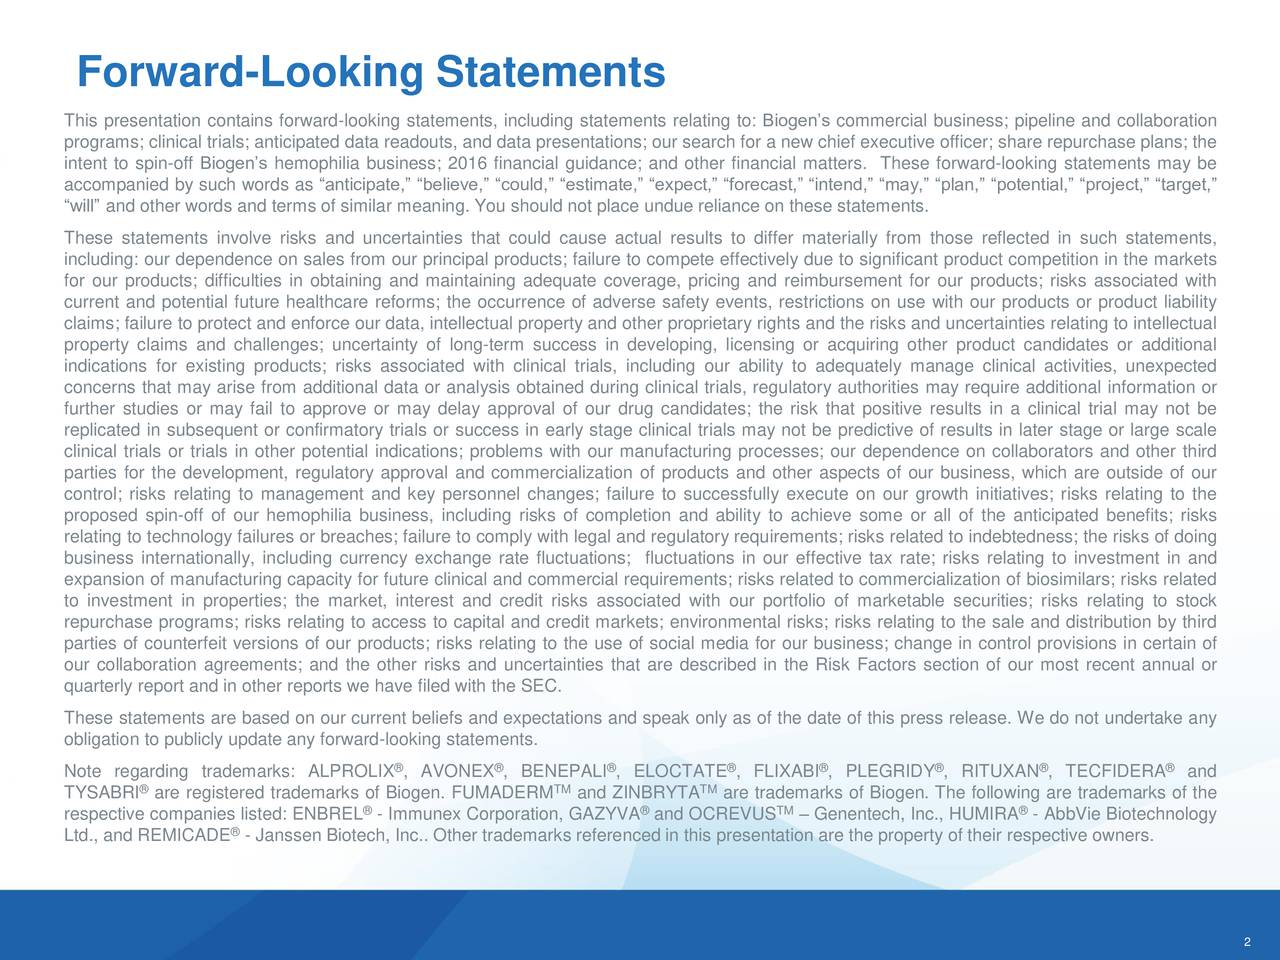 This presentation contains forward-looking statements, including statements relating to: Biogens commercial business; pipeline and collaboration programs; clinical trials; anticipated data readouts, and data presentations; our search for a new chief executive officer; share repurchase plans; the intent to spin-off Biogens hemophilia business; 2016 financial guidance; and other financial matters. These forward-looking statements may be accompanied by such words as anticipate, believe, could, estimate, expect, forecast, intend, may, plan, potential, project, target, will and other words and terms of similar meaning. You should not place undue reliance on these statements. These statements involve risks and uncertainties that could cause actual results to differ materially from those reflected in such statements, including: our dependence on sales from our principal products; failure to compete effectively due to significant product competition in the markets for our products; difficulties in obtaining and maintaining adequate coverage, pricing and reimbursement for our products; risks associated with current and potential future healthcare reforms; the occurrence of adverse safety events, restrictions on use with our products or product liability claims; failure to protect and enforce our data, intellectual property and other proprietary rights and the risks and uncertainties relating to intellectual property claims and challenges; uncertainty of long-term success in developing, licensing or acquiring other product candidates or additional indications for existing products; risks associated with clinical trials, including our ability to adequately manage clinical activities, unexpected concerns that may arise from additional data or analysis obtained during clinical trials, regulatory authorities may require additional information or further studies or may fail to approve or may delay approval of our drug candidates; the risk that positive results in a clinical trial 